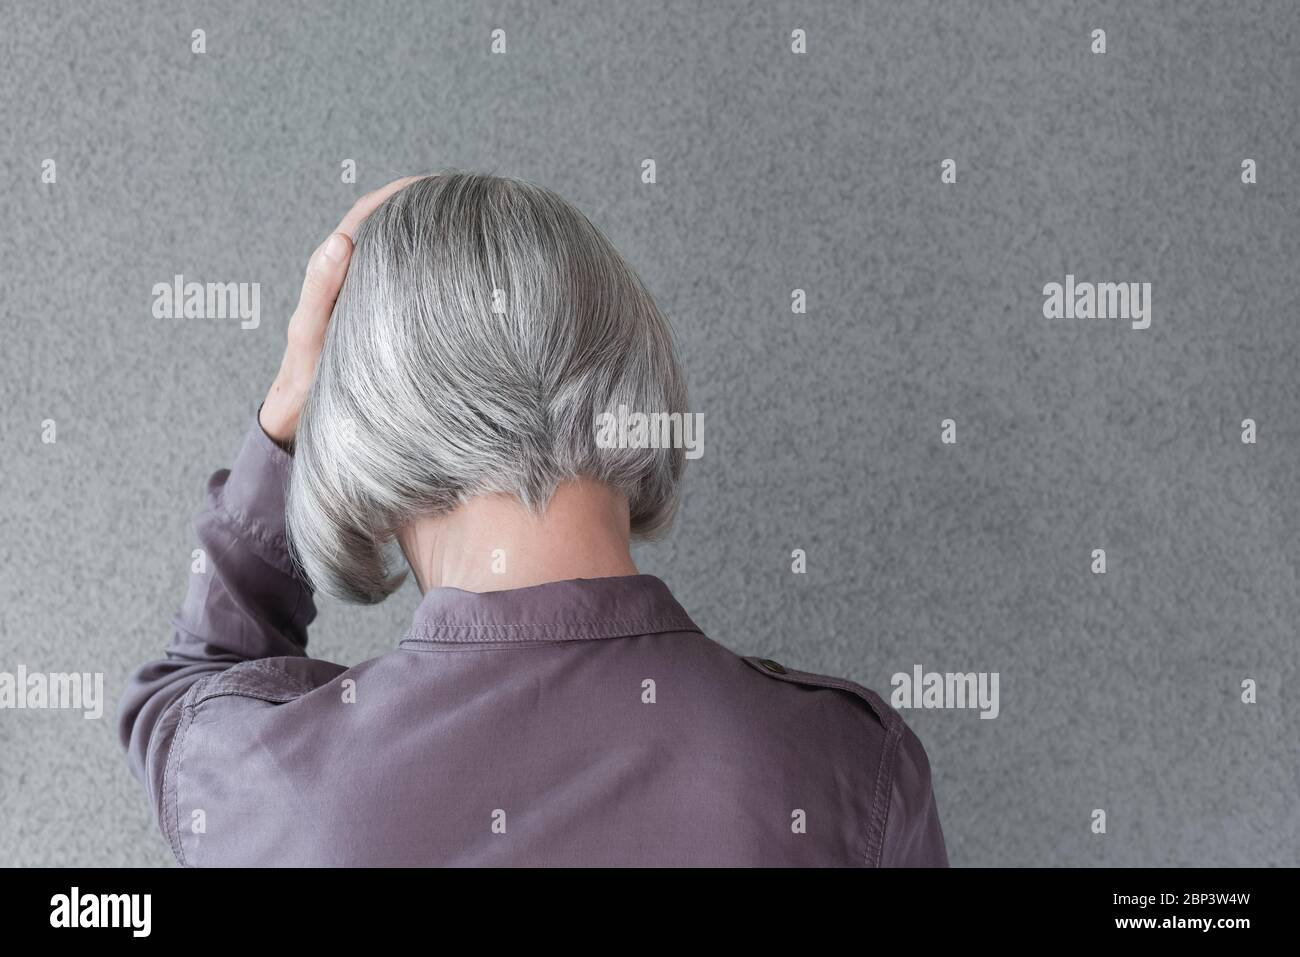 Upset gray-haired woman, holding her head with her hand, on gray background with copy space. Stock Photo